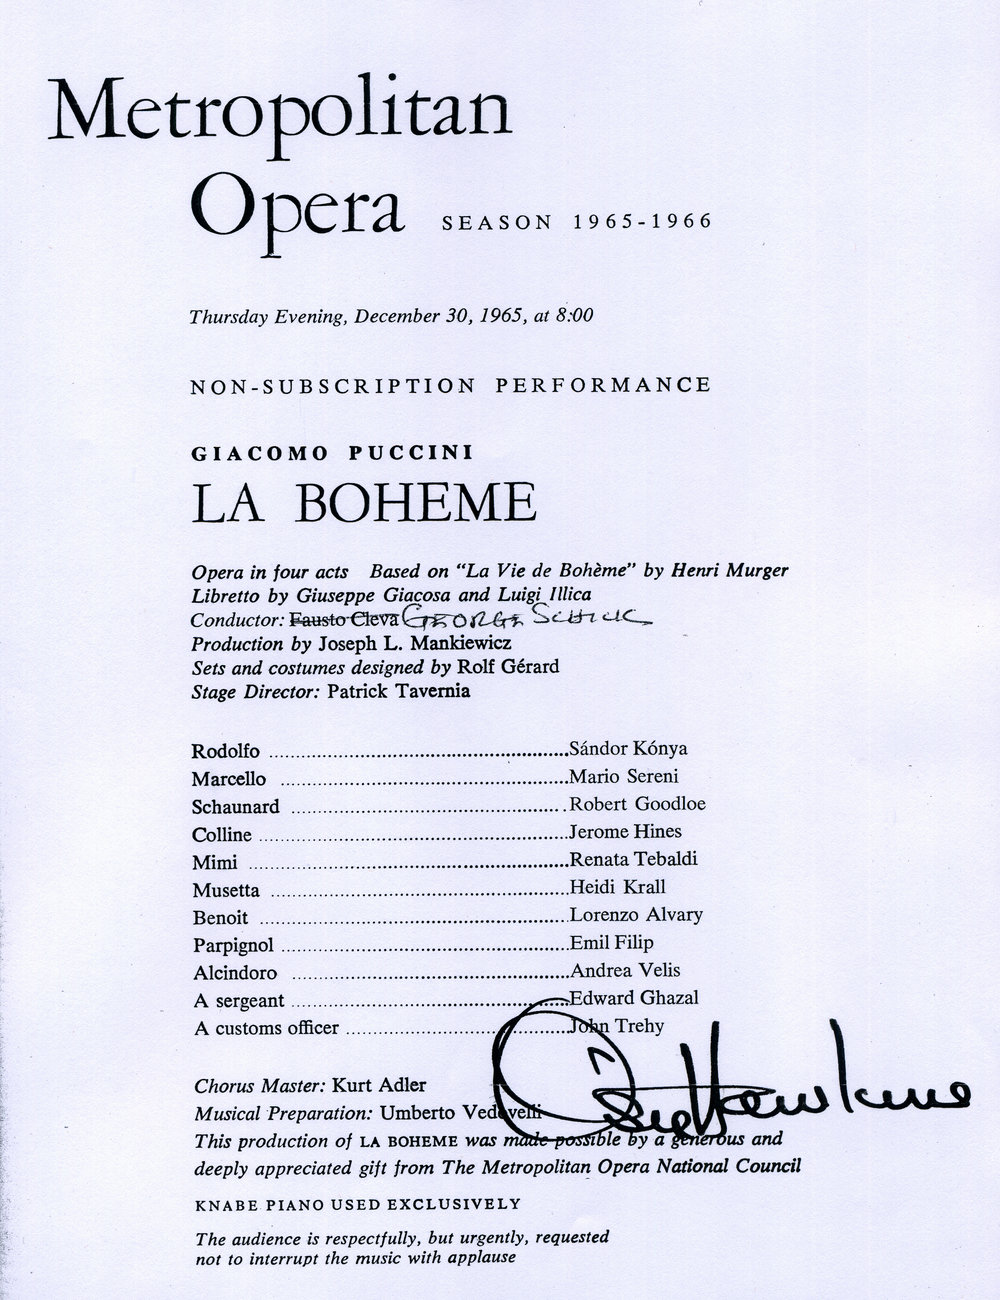 The cast list for La Bohème, December 30, 1965